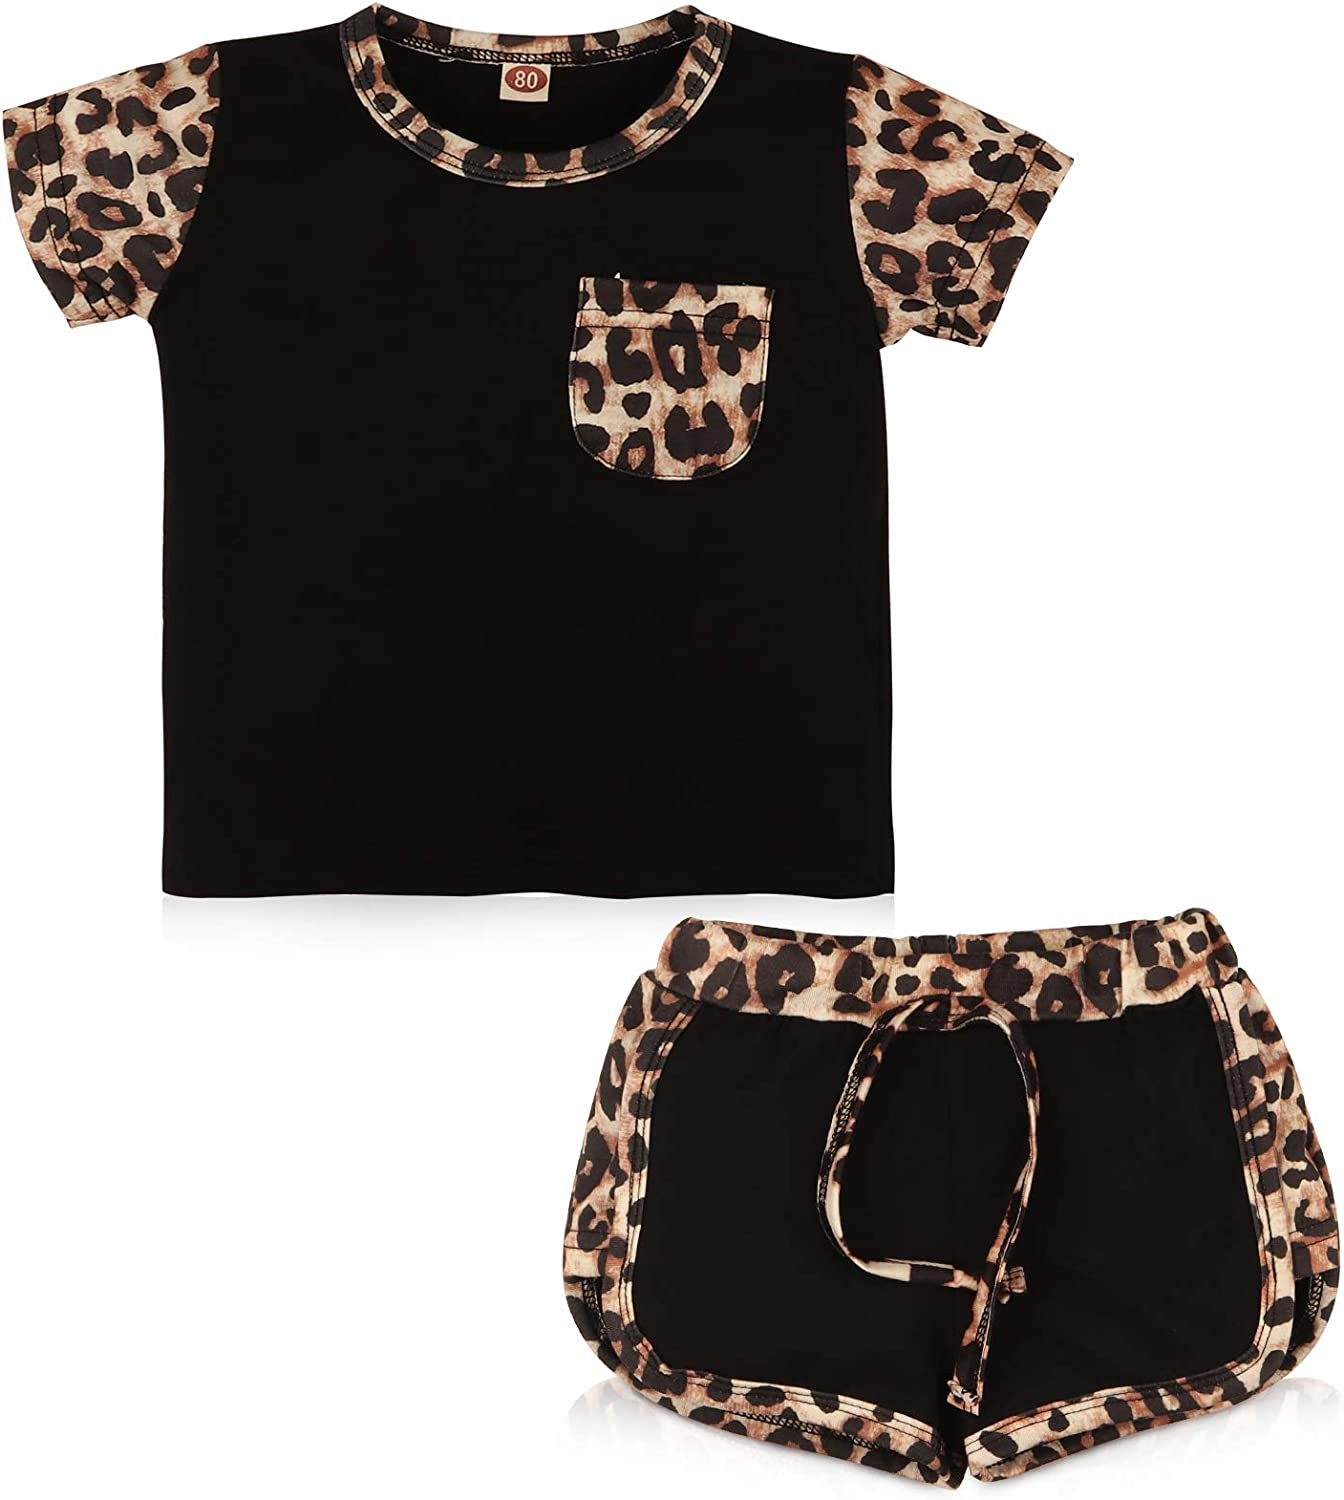 Leccod Toddler Infant Baby Girls Summer Clothes Outfits Leopard Print Short Sleeve Pocket T-Shirt Tops Pants Set